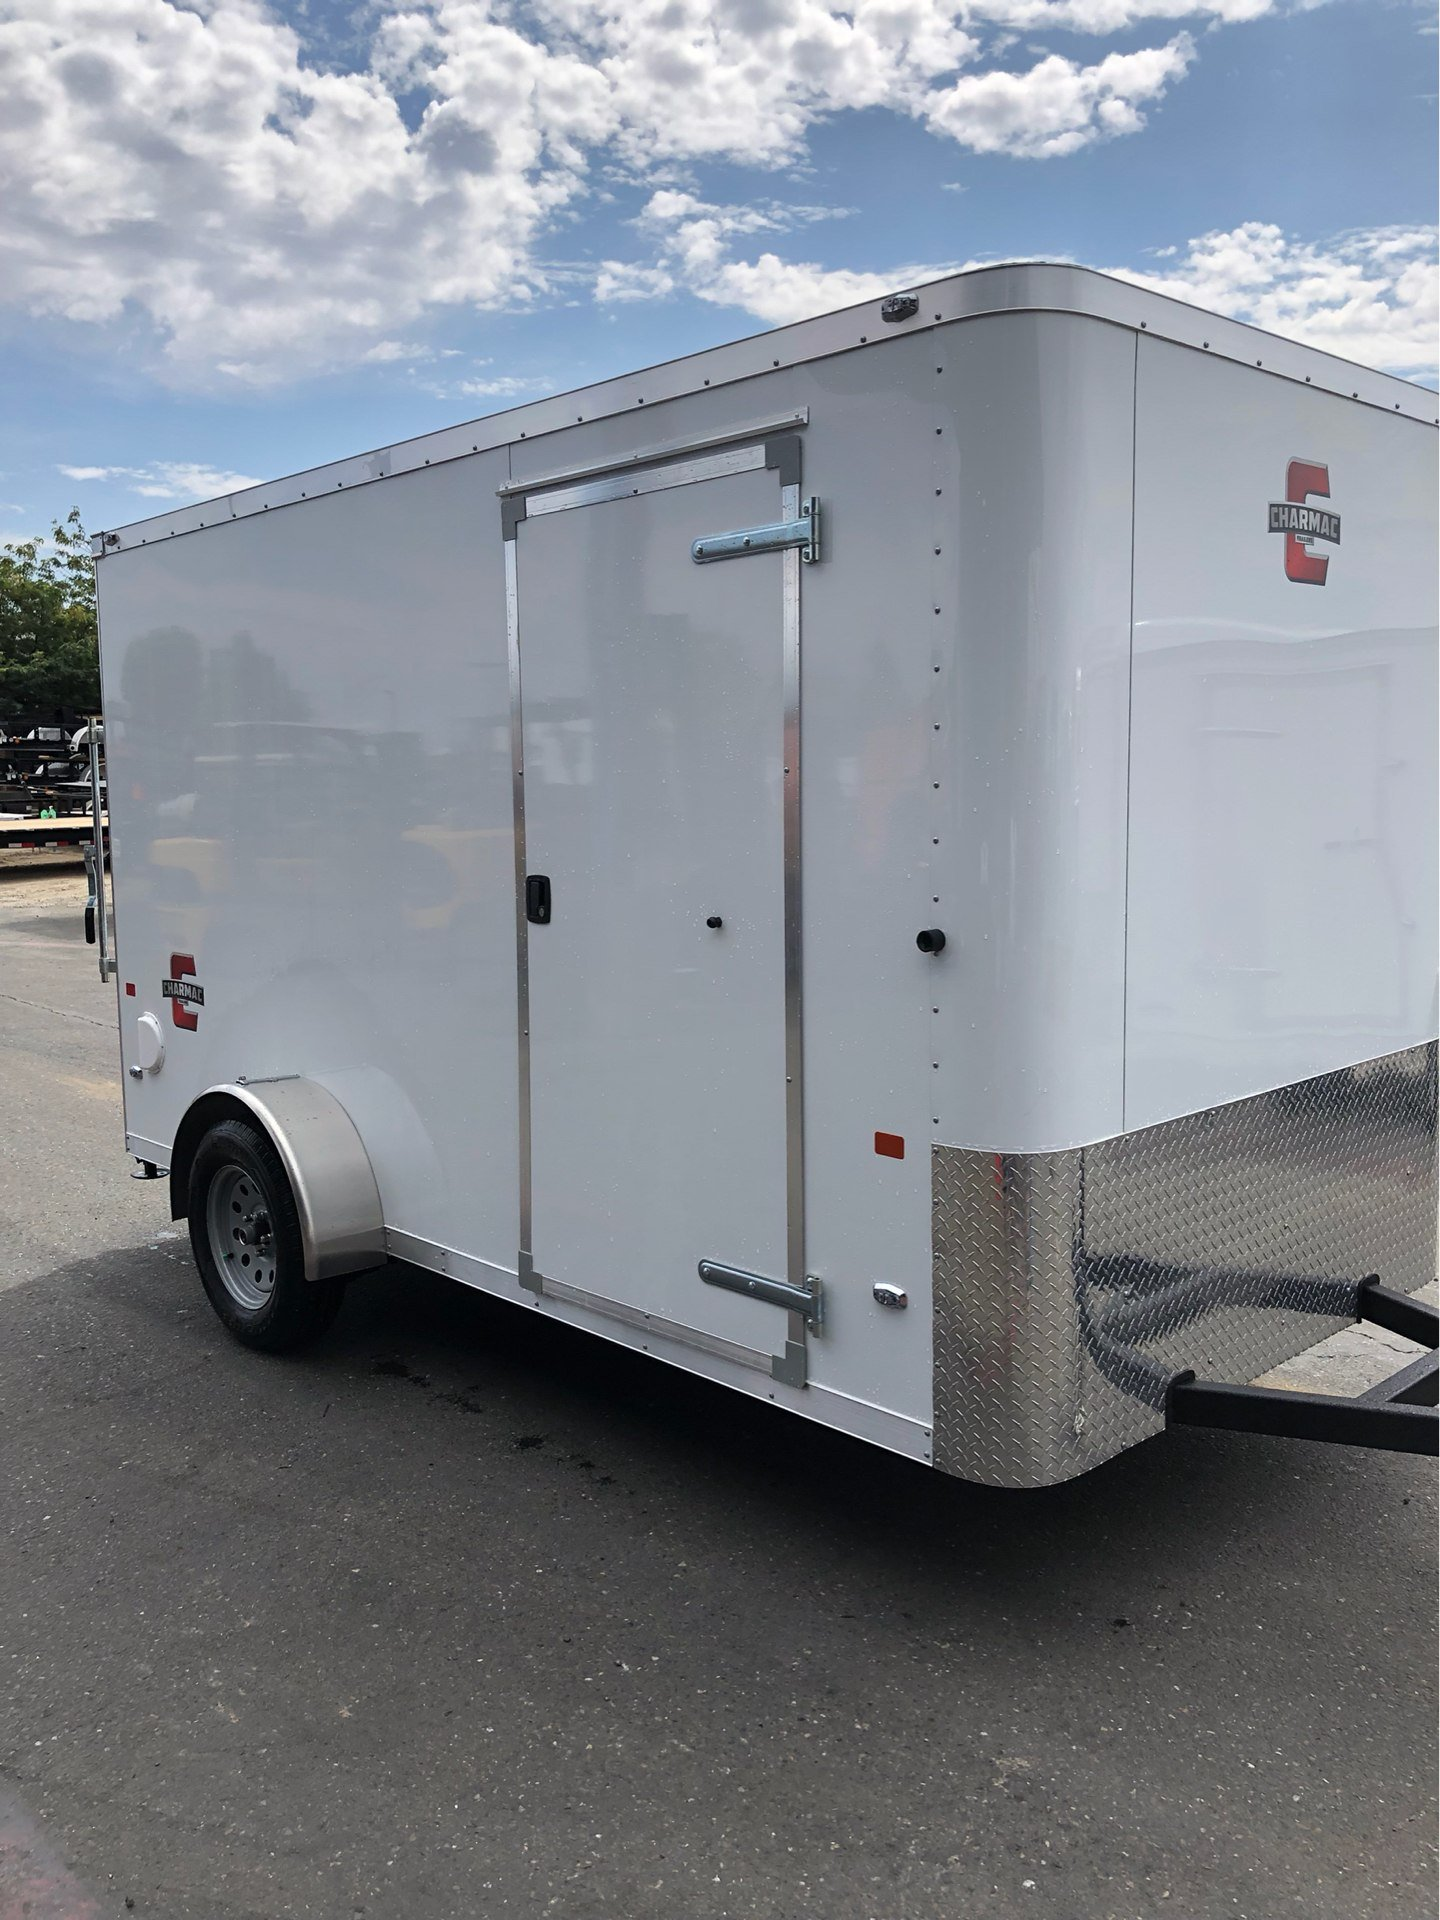 2020 Charmac Trailers 10' X 6' STEALTH CARGO TRAILER in Elk Grove, California - Photo 6